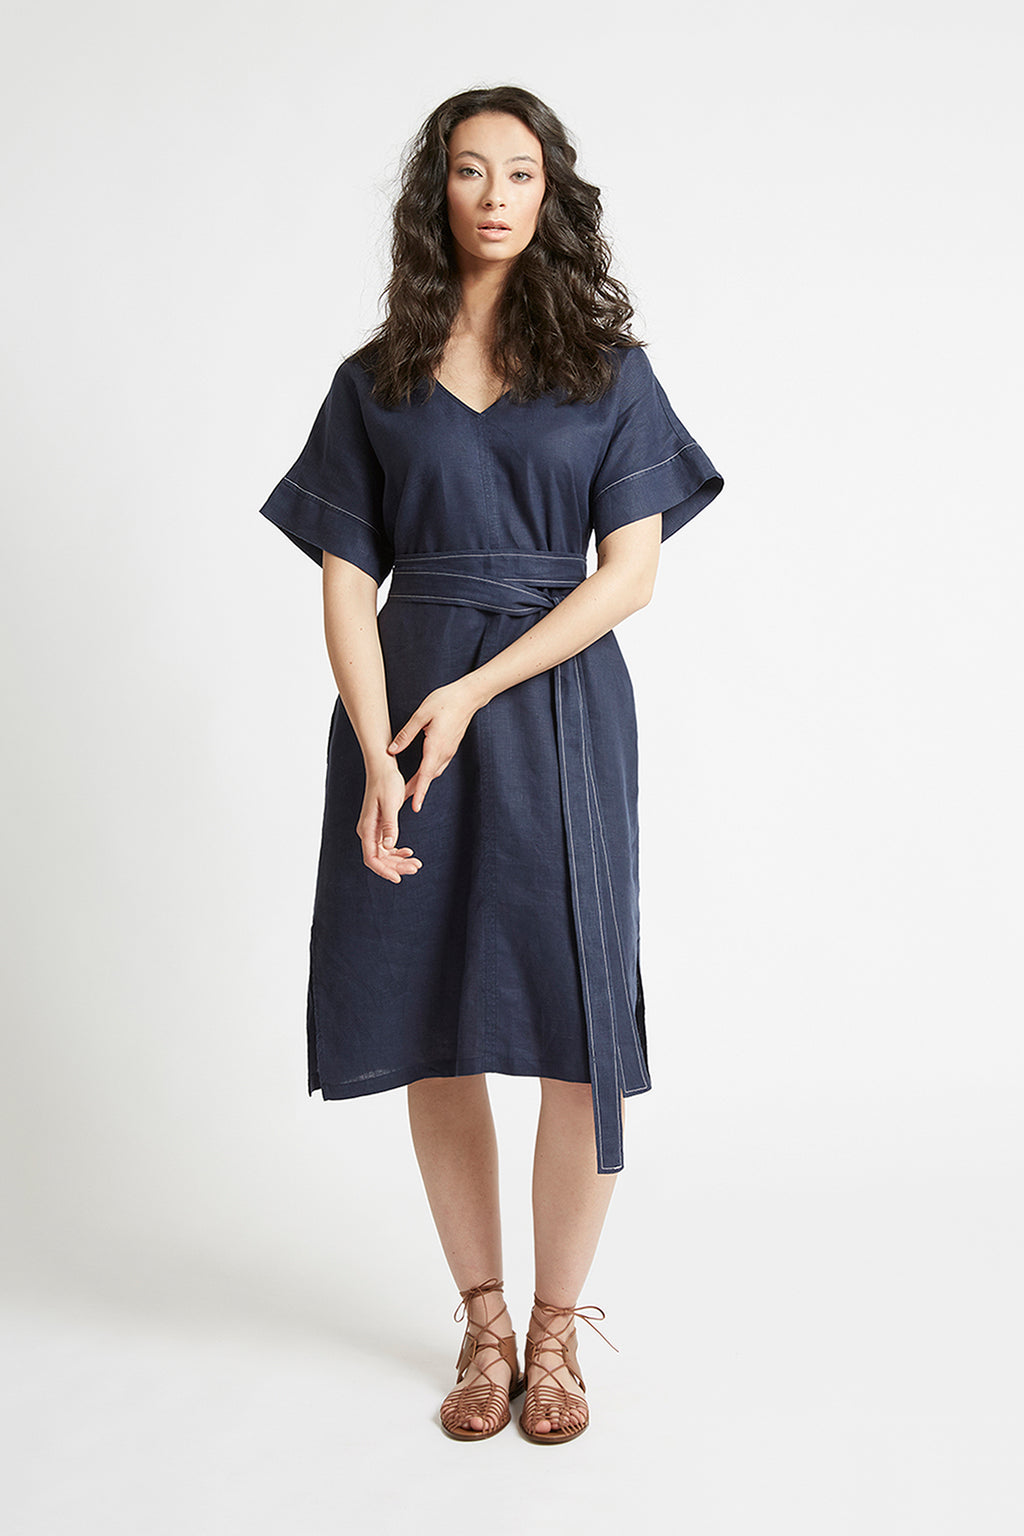 Navy Linen Kimono Sleeve Dress Dresses Ethical Sustainable Vegan Organic Australian fashion womens clothes